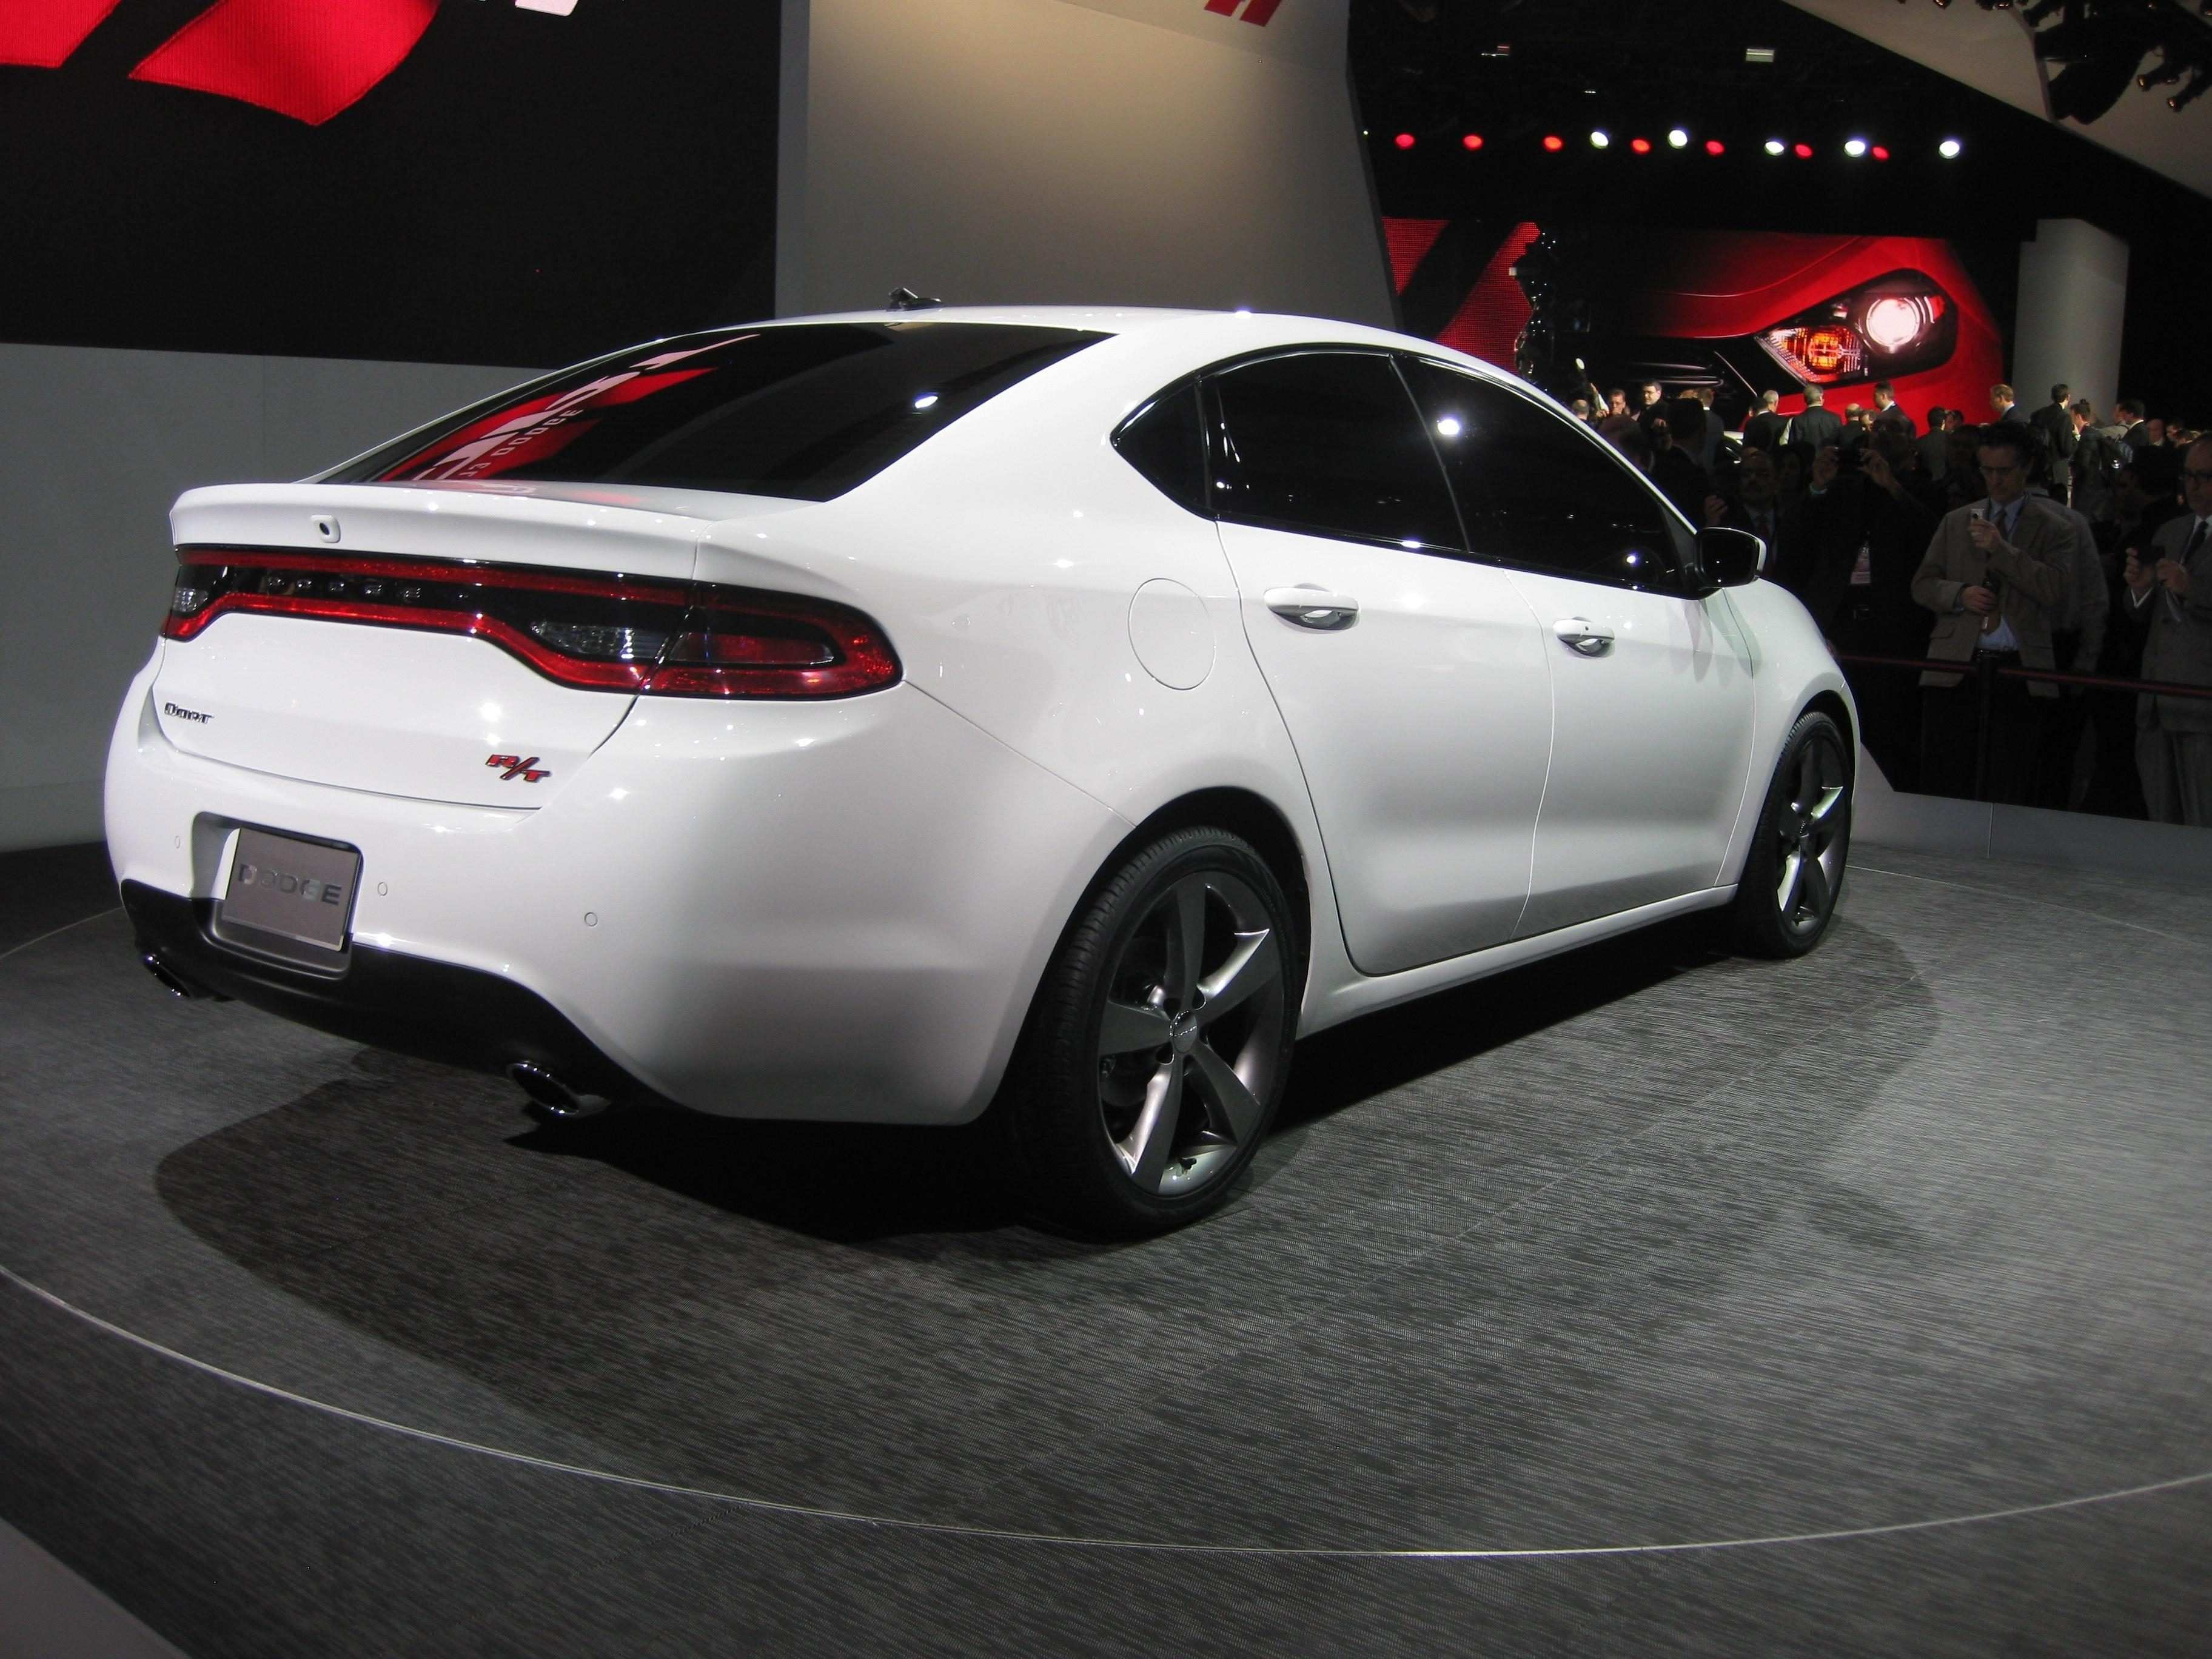 63 All New 2019 Dodge Dart SRT Exterior